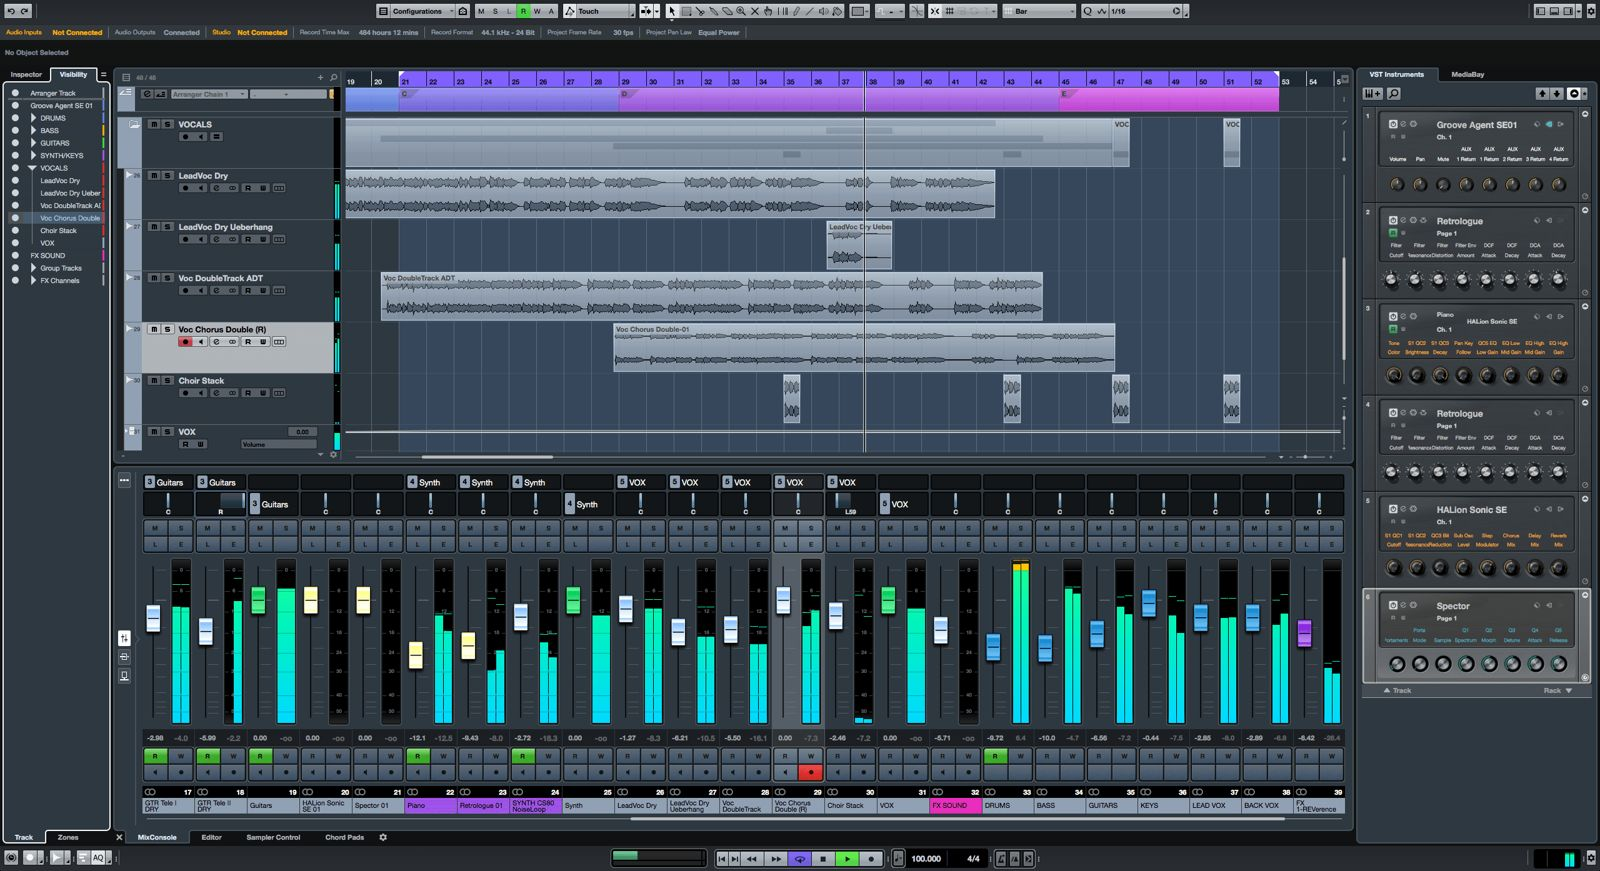 Cubase 9 Daw Released By Steinberg